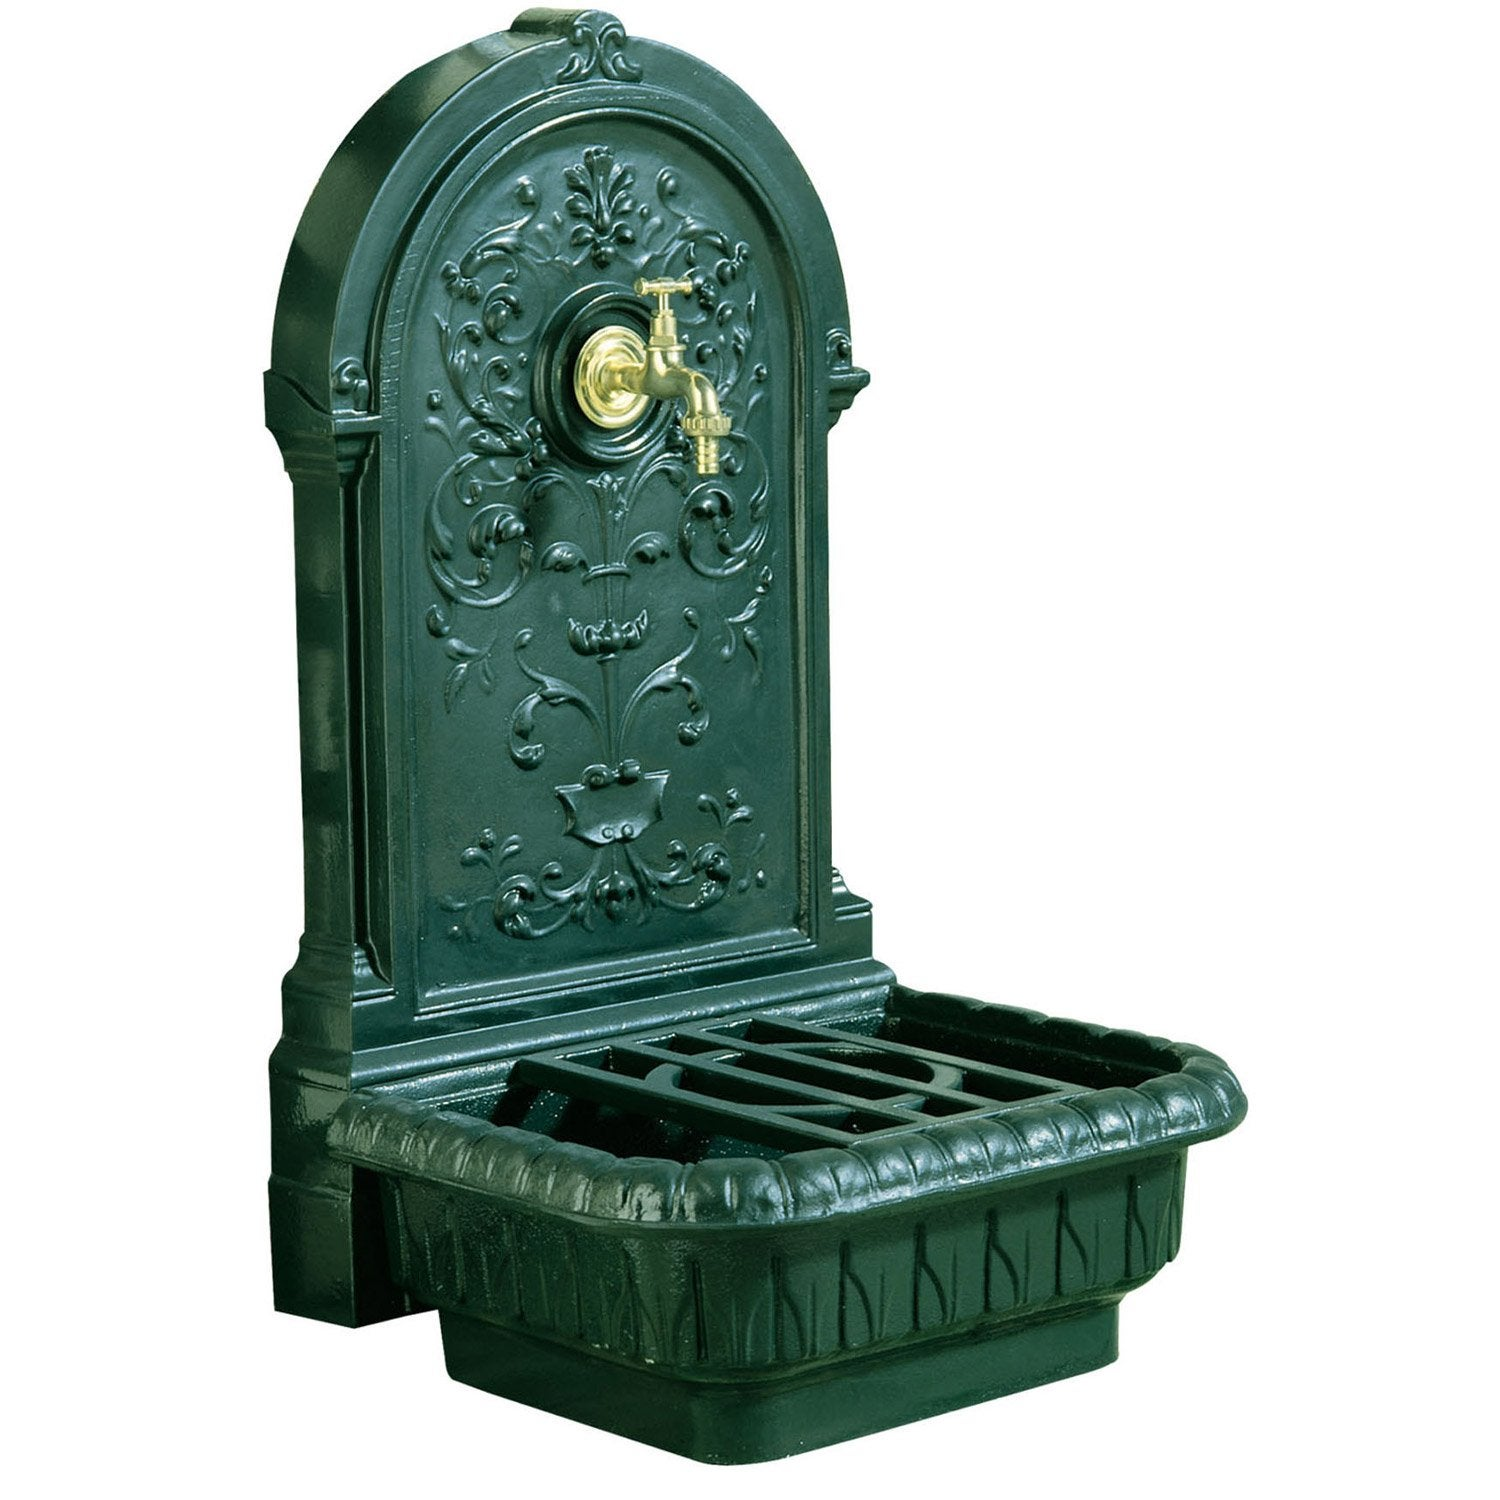 fontaine de jardin en fonte vert renaissance leroy merlin. Black Bedroom Furniture Sets. Home Design Ideas